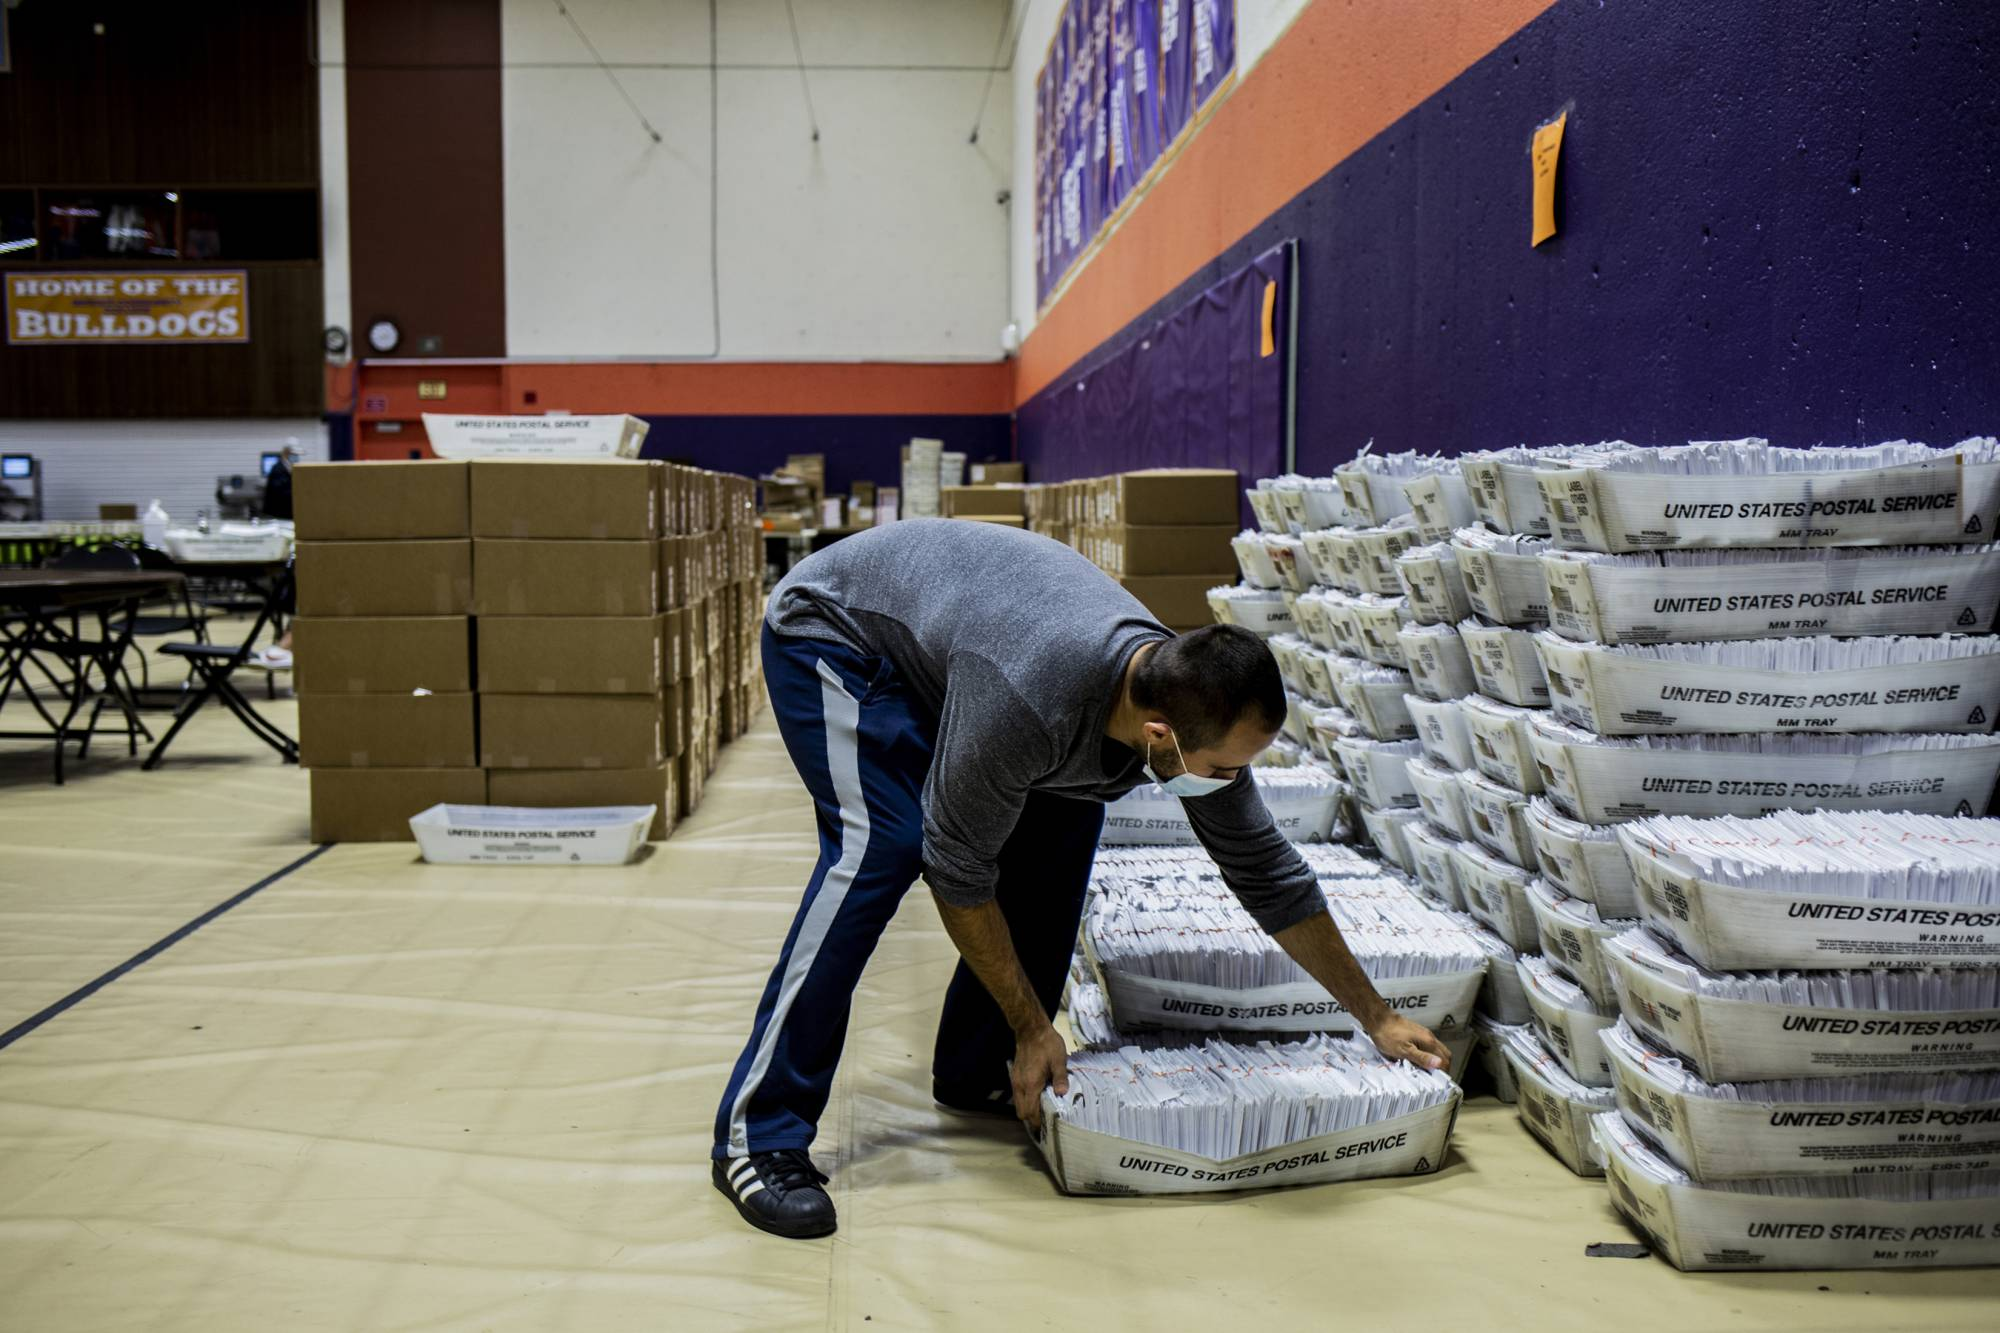 A Bergen County ballot board official moves mail-in ballots on Monday in a gym in Paramus, New Jersey. | BRYAN ANSELM / THE NEW YORK TIMES